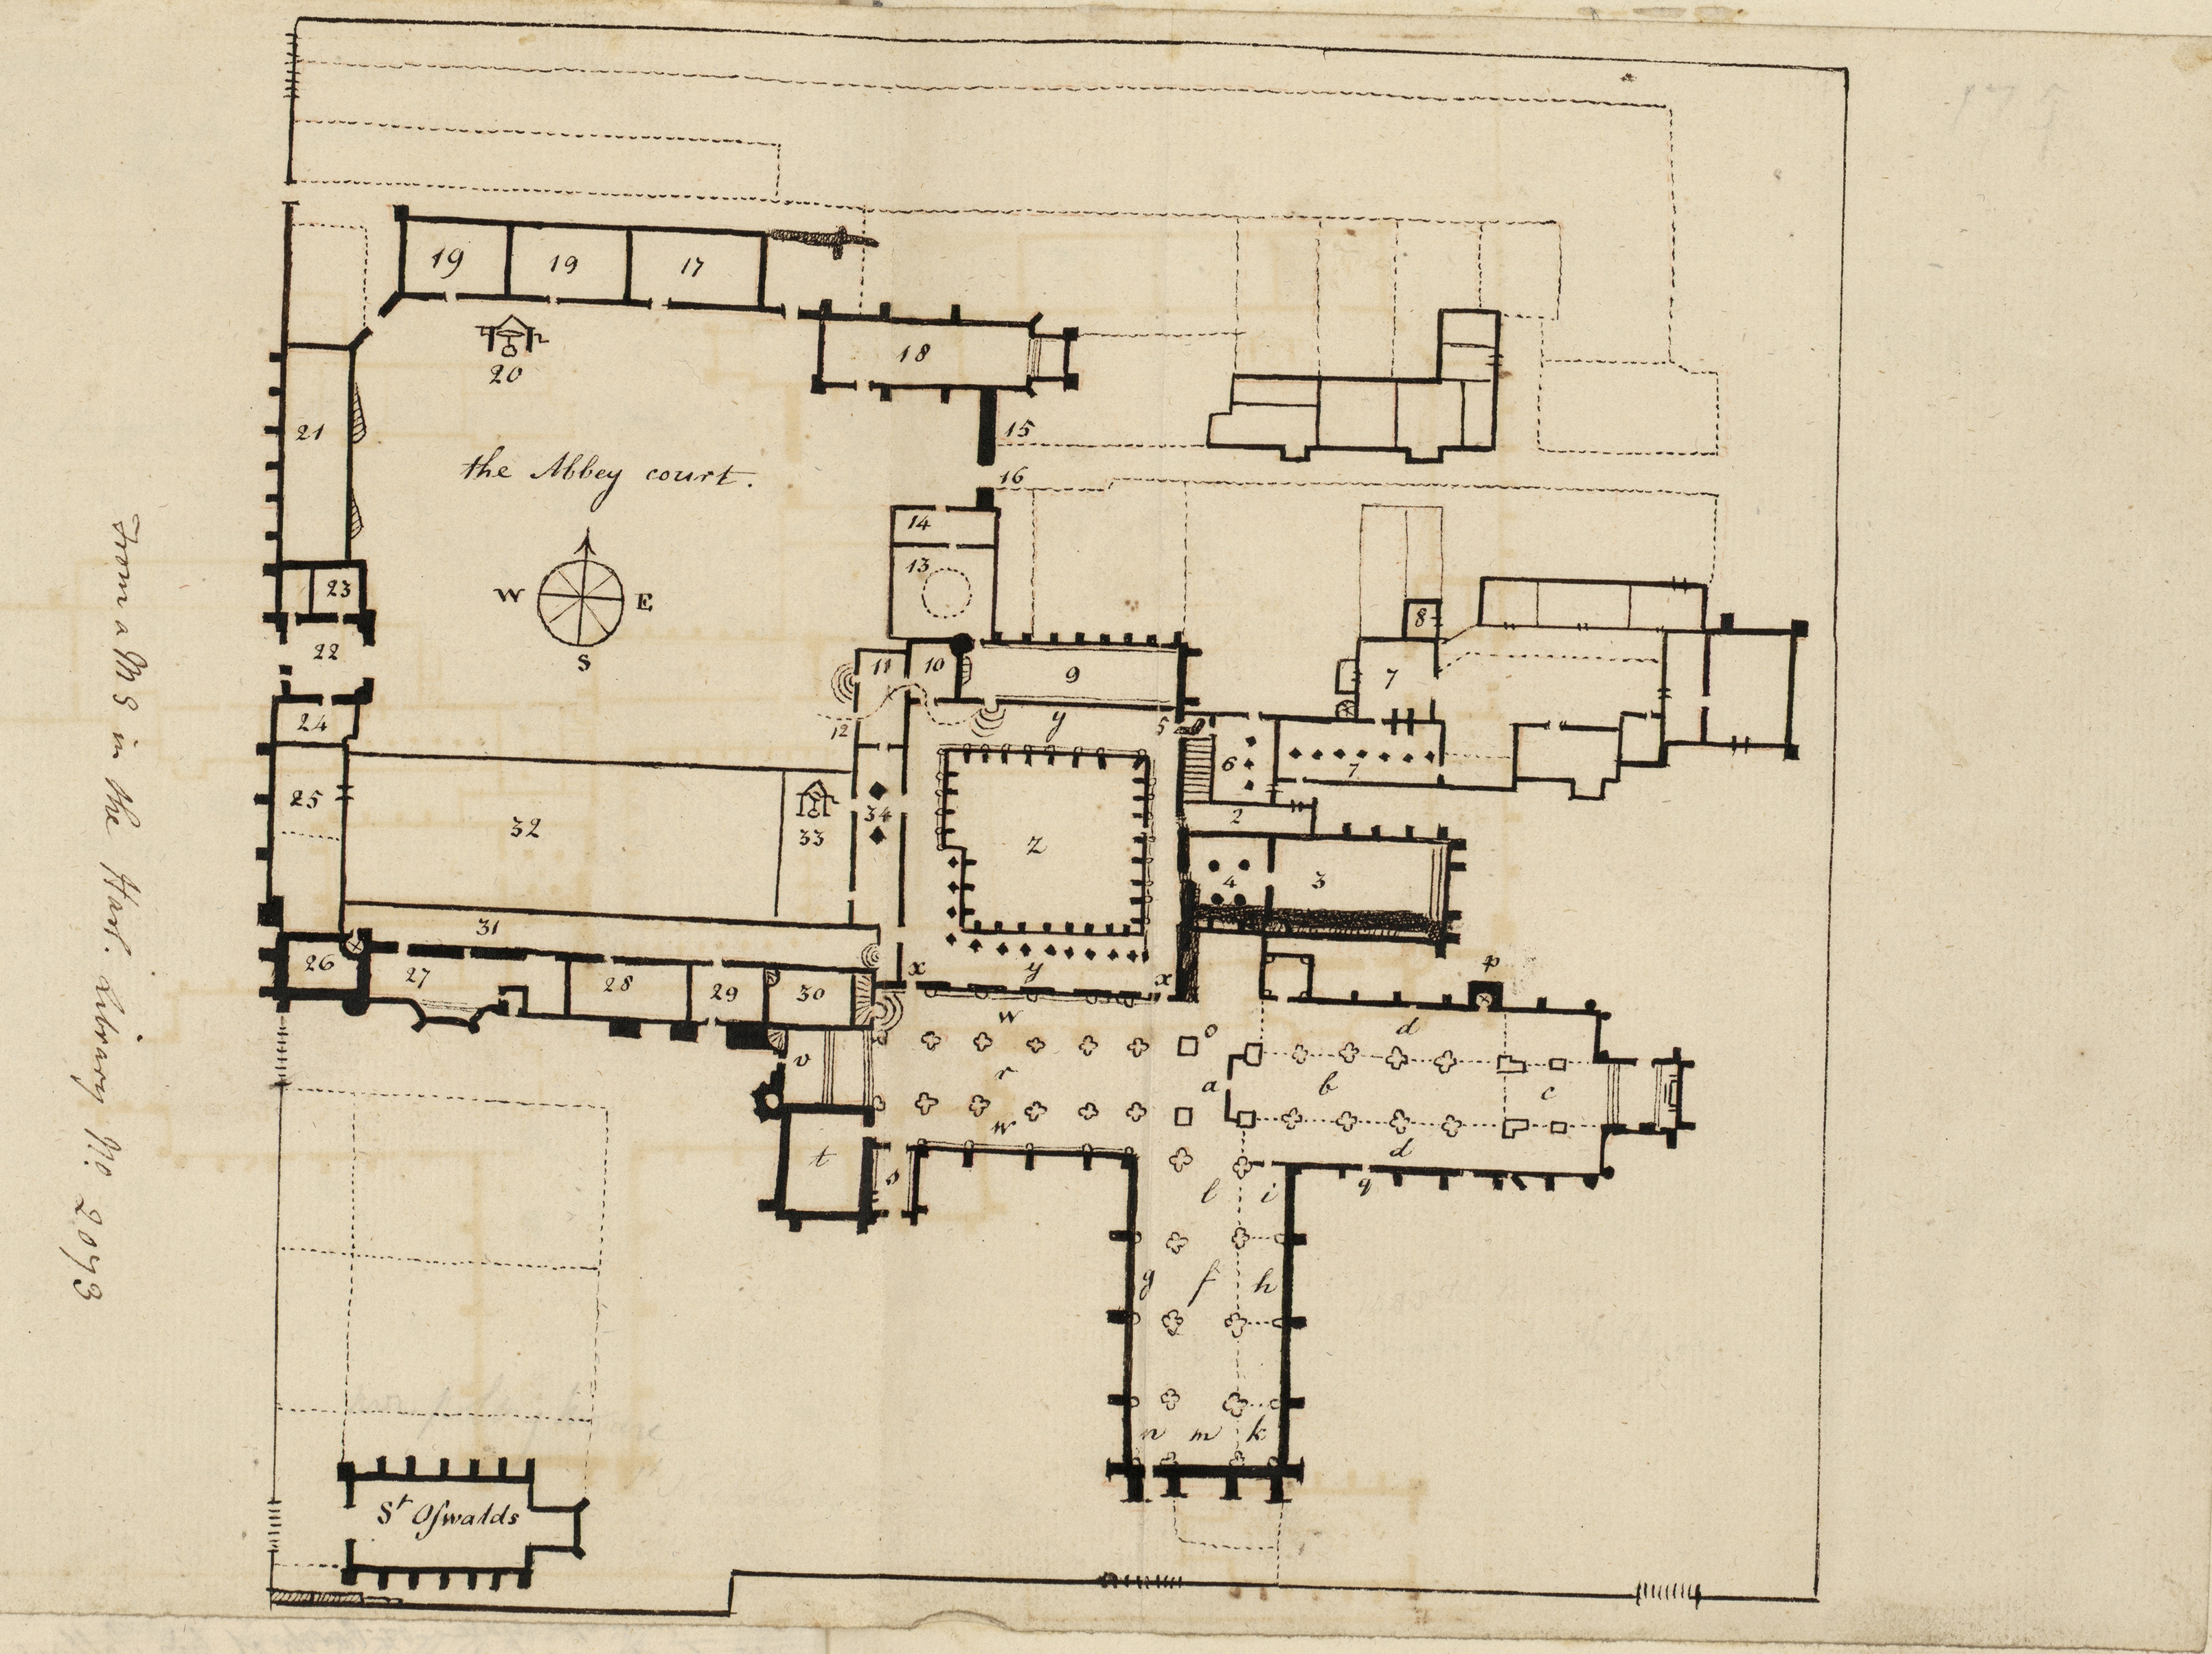 File:Chester Catheadral plan jpg - Wikimedia Commons